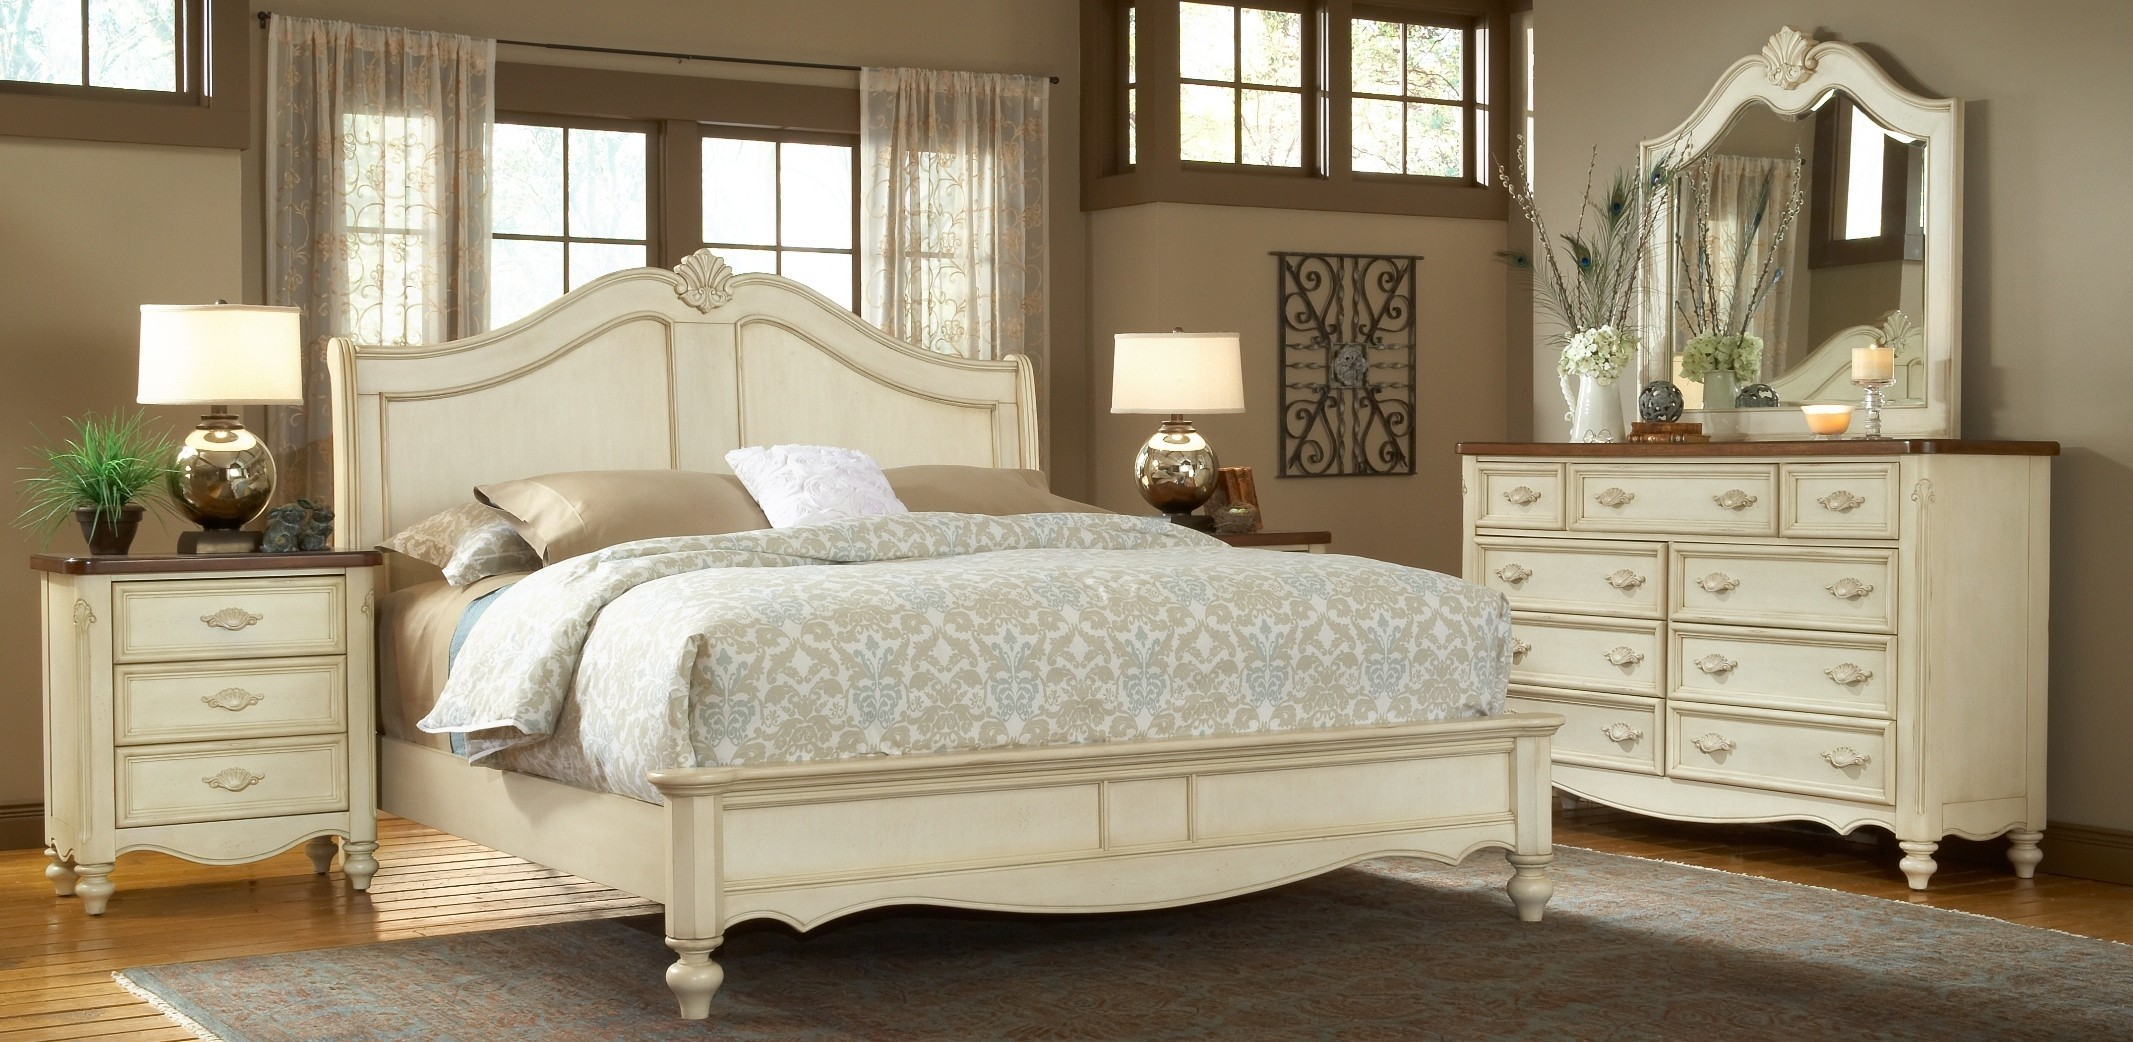 chateau sleigh bedroom set from american woodcrafters 3501 50sle coleman furniture. Black Bedroom Furniture Sets. Home Design Ideas